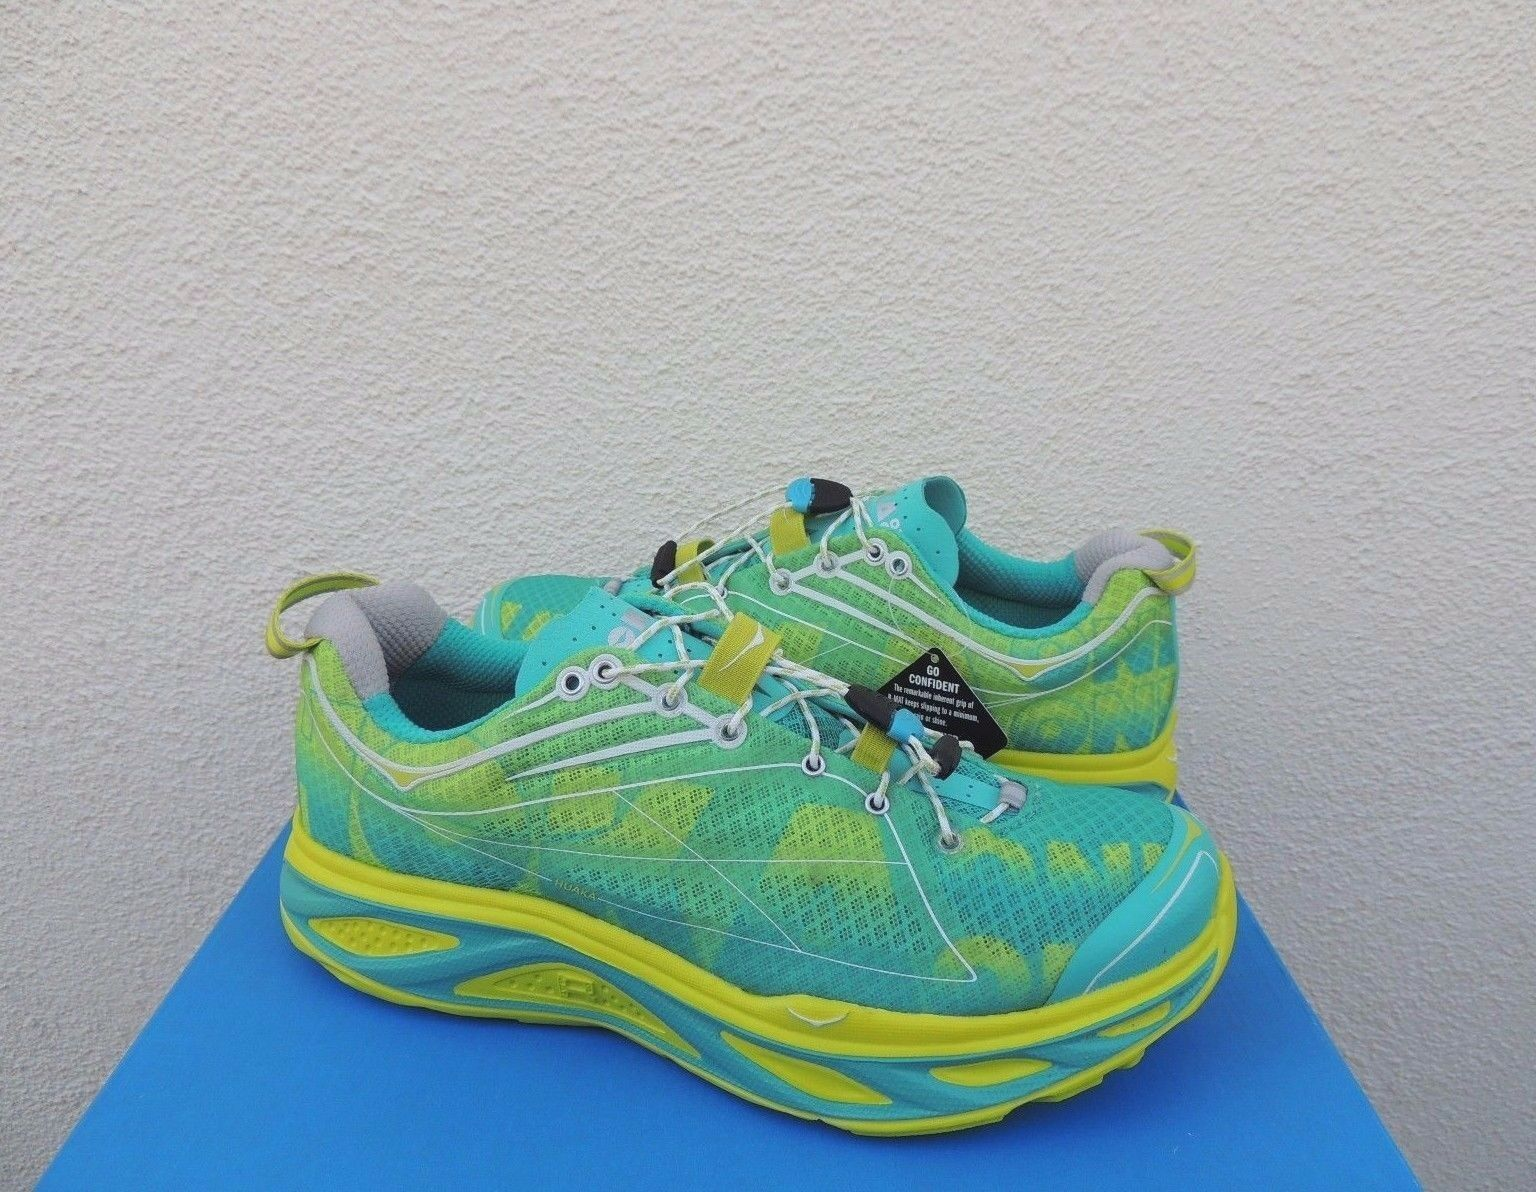 HOKA ONE ONE HUAKA ACID  AQUA TRAIL RUNNING SHOES, WOMEN US 11  EUR 44 NEW